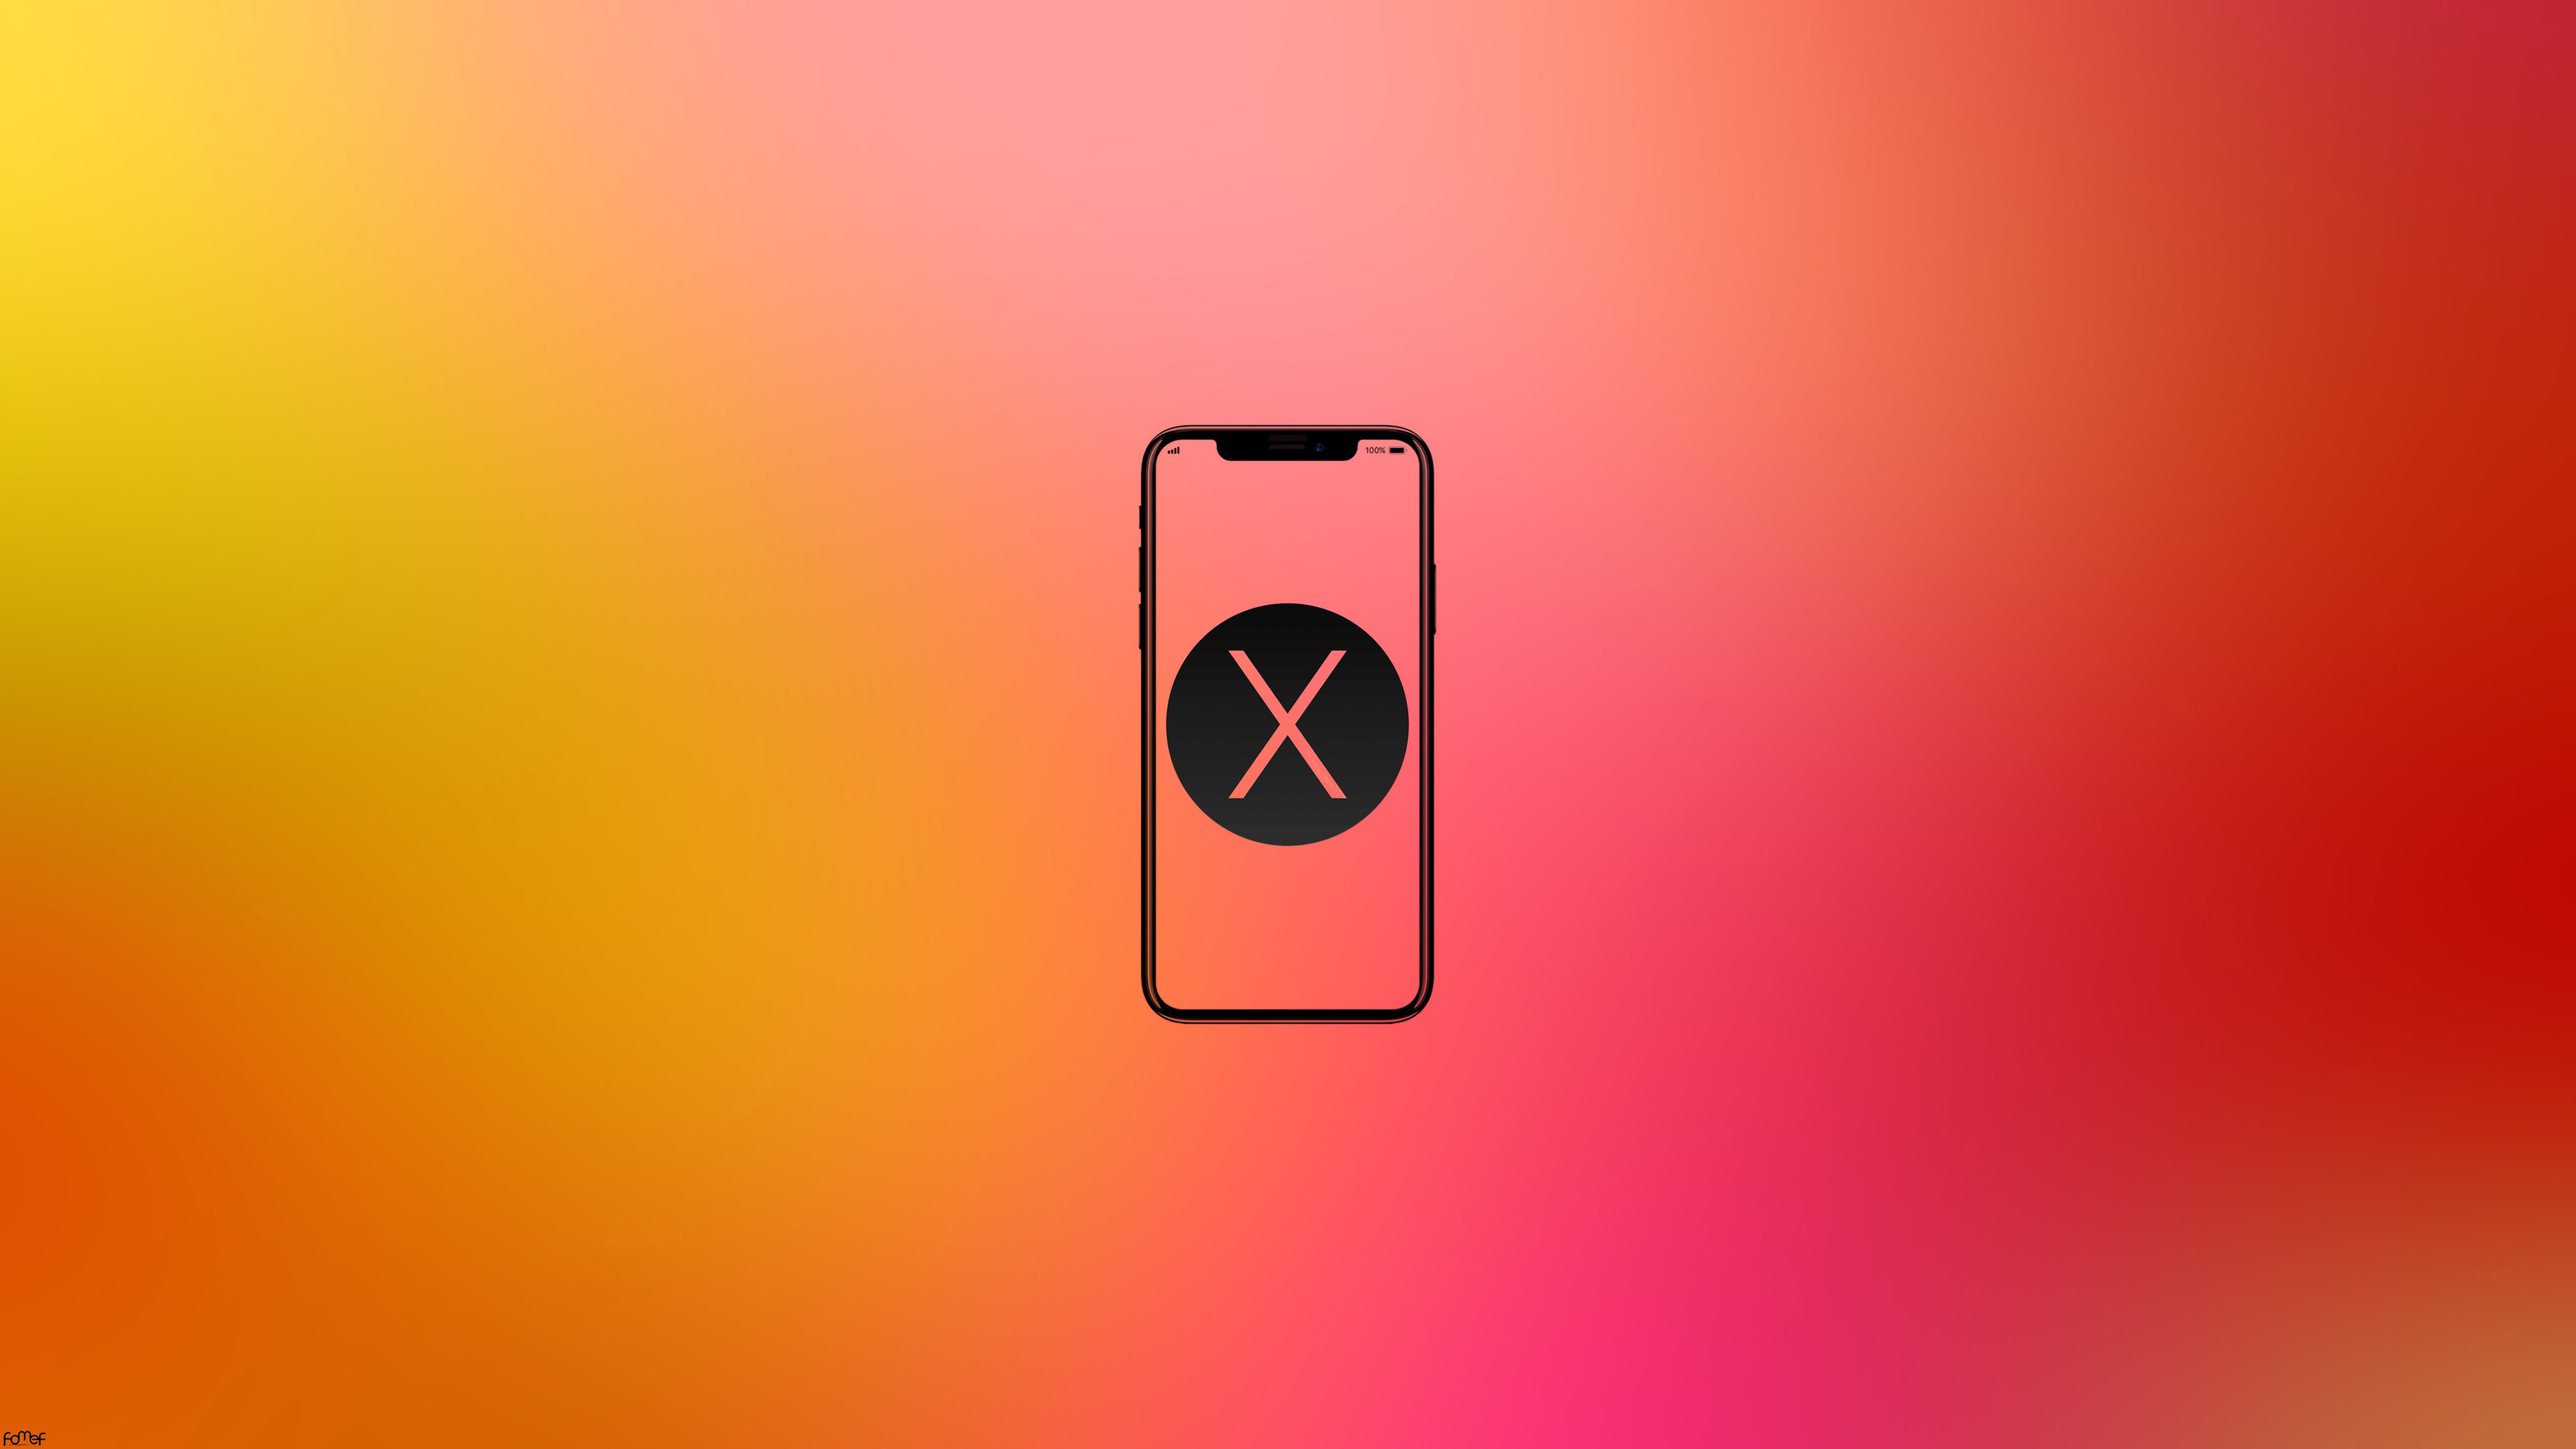 Wallpaper 4k Iphone X Mobile Phone Minimalism 4k 4k Wallpapers Artist Wallpapers Hd Wallpapers Iphone Wallpapers Minimalism Wallpapers